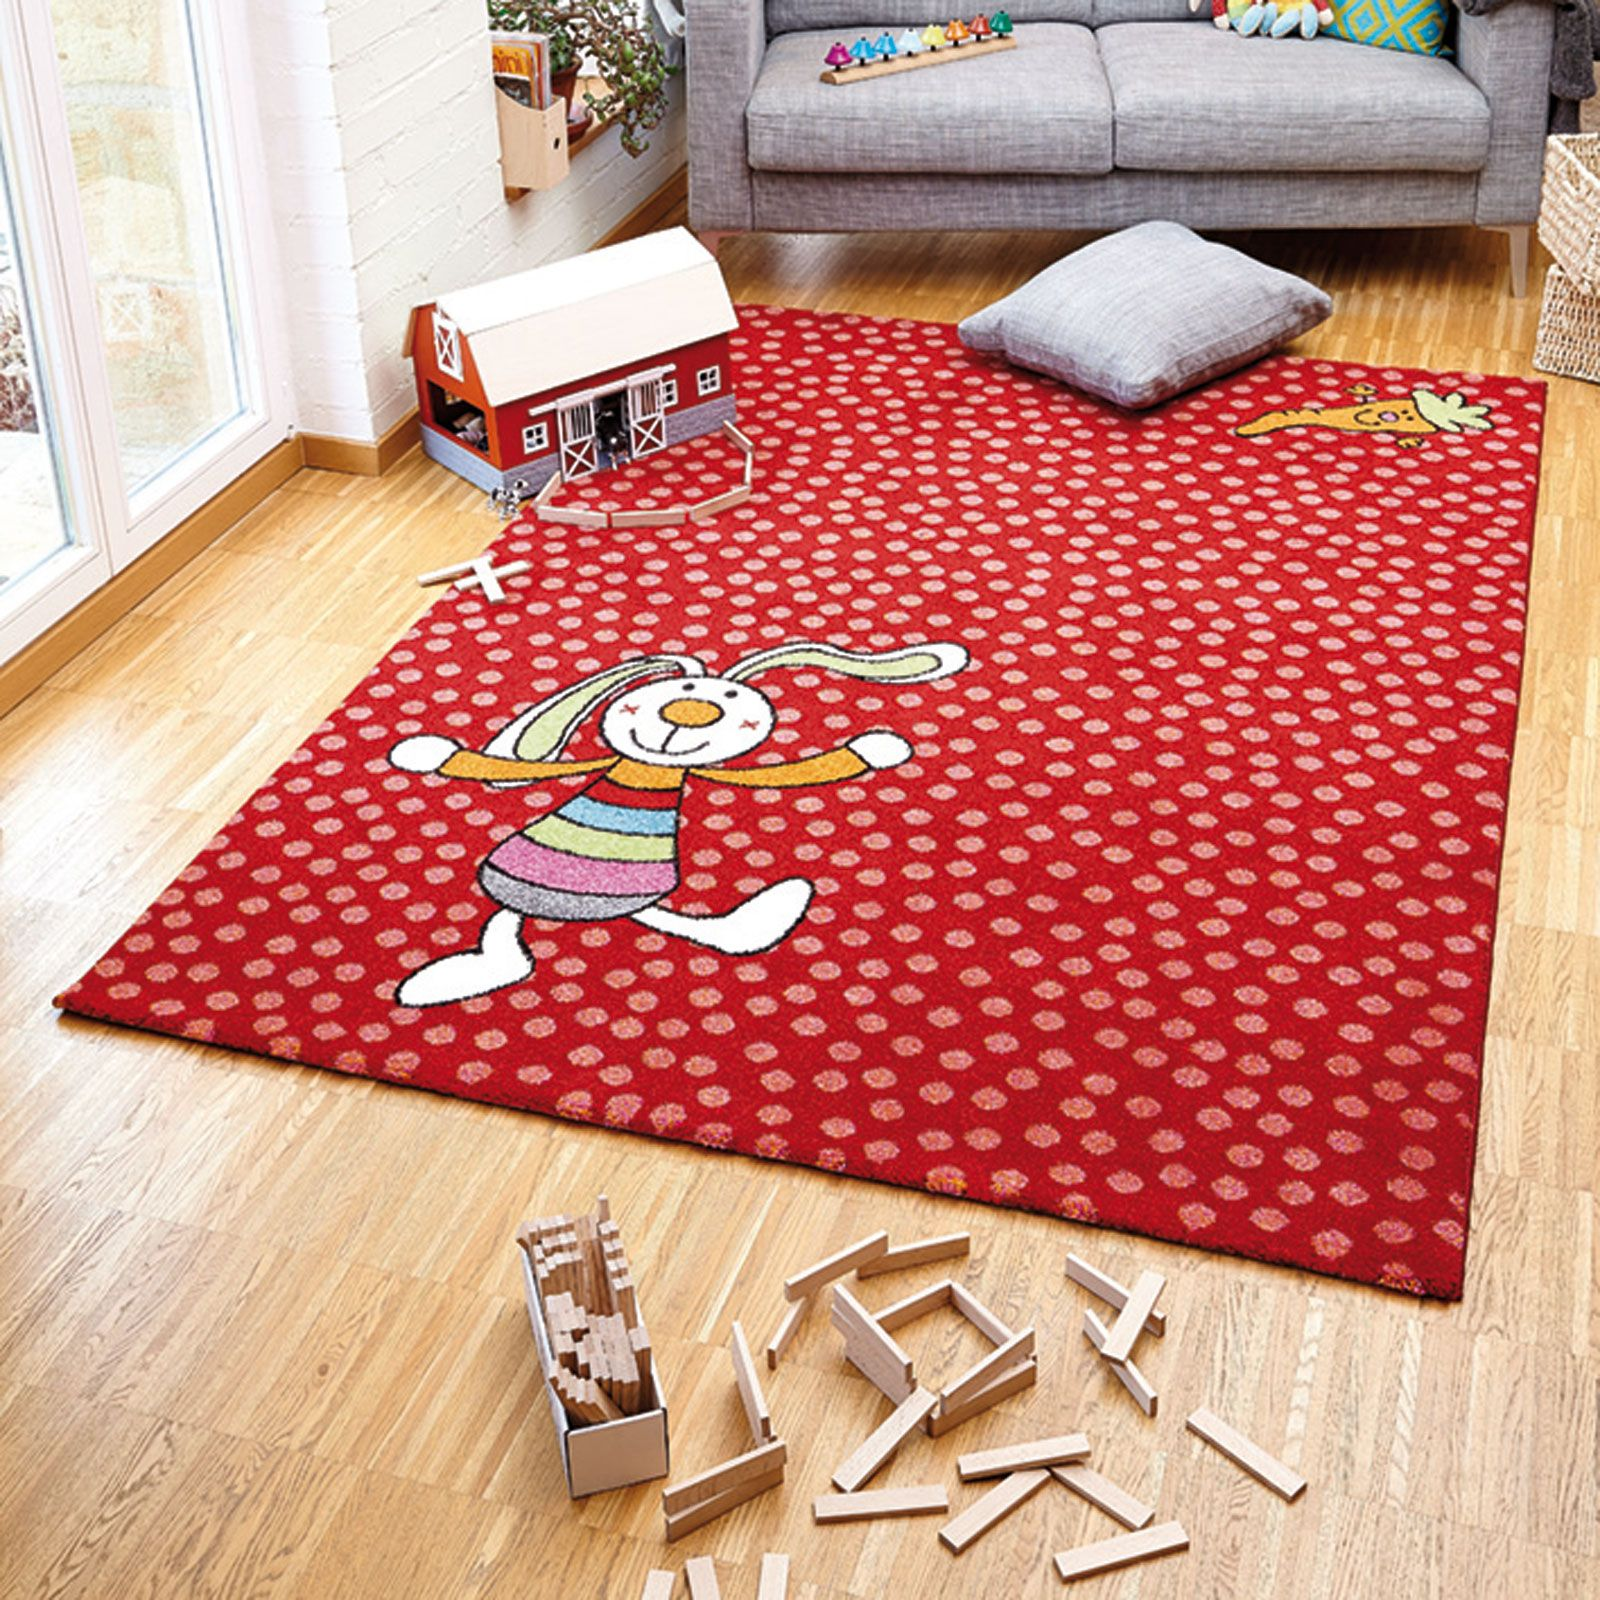 Rainbow Rabbit Rug In Red 0523